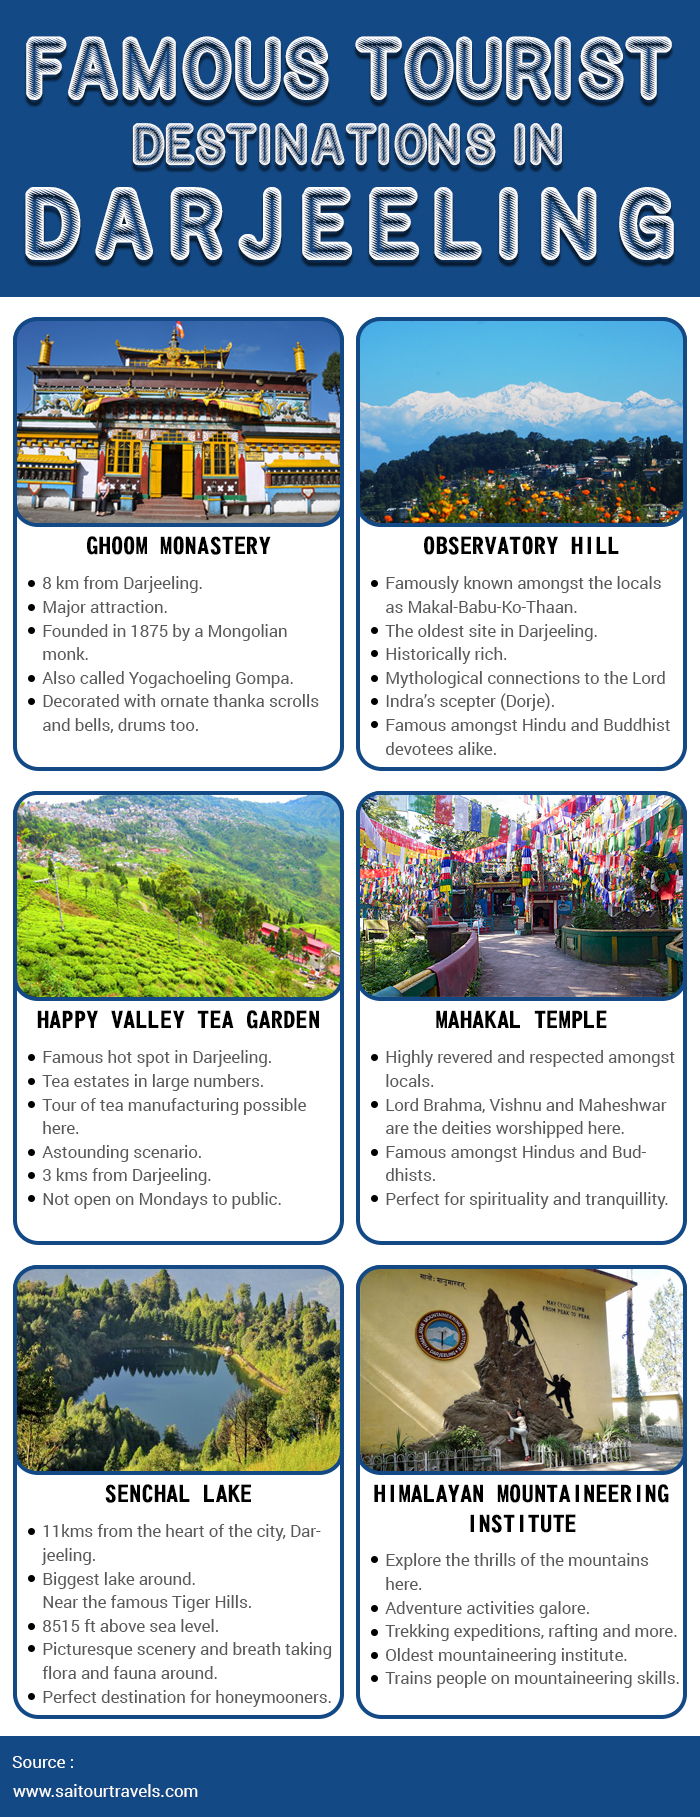 Famous Tourist Destinations in Darjeeling